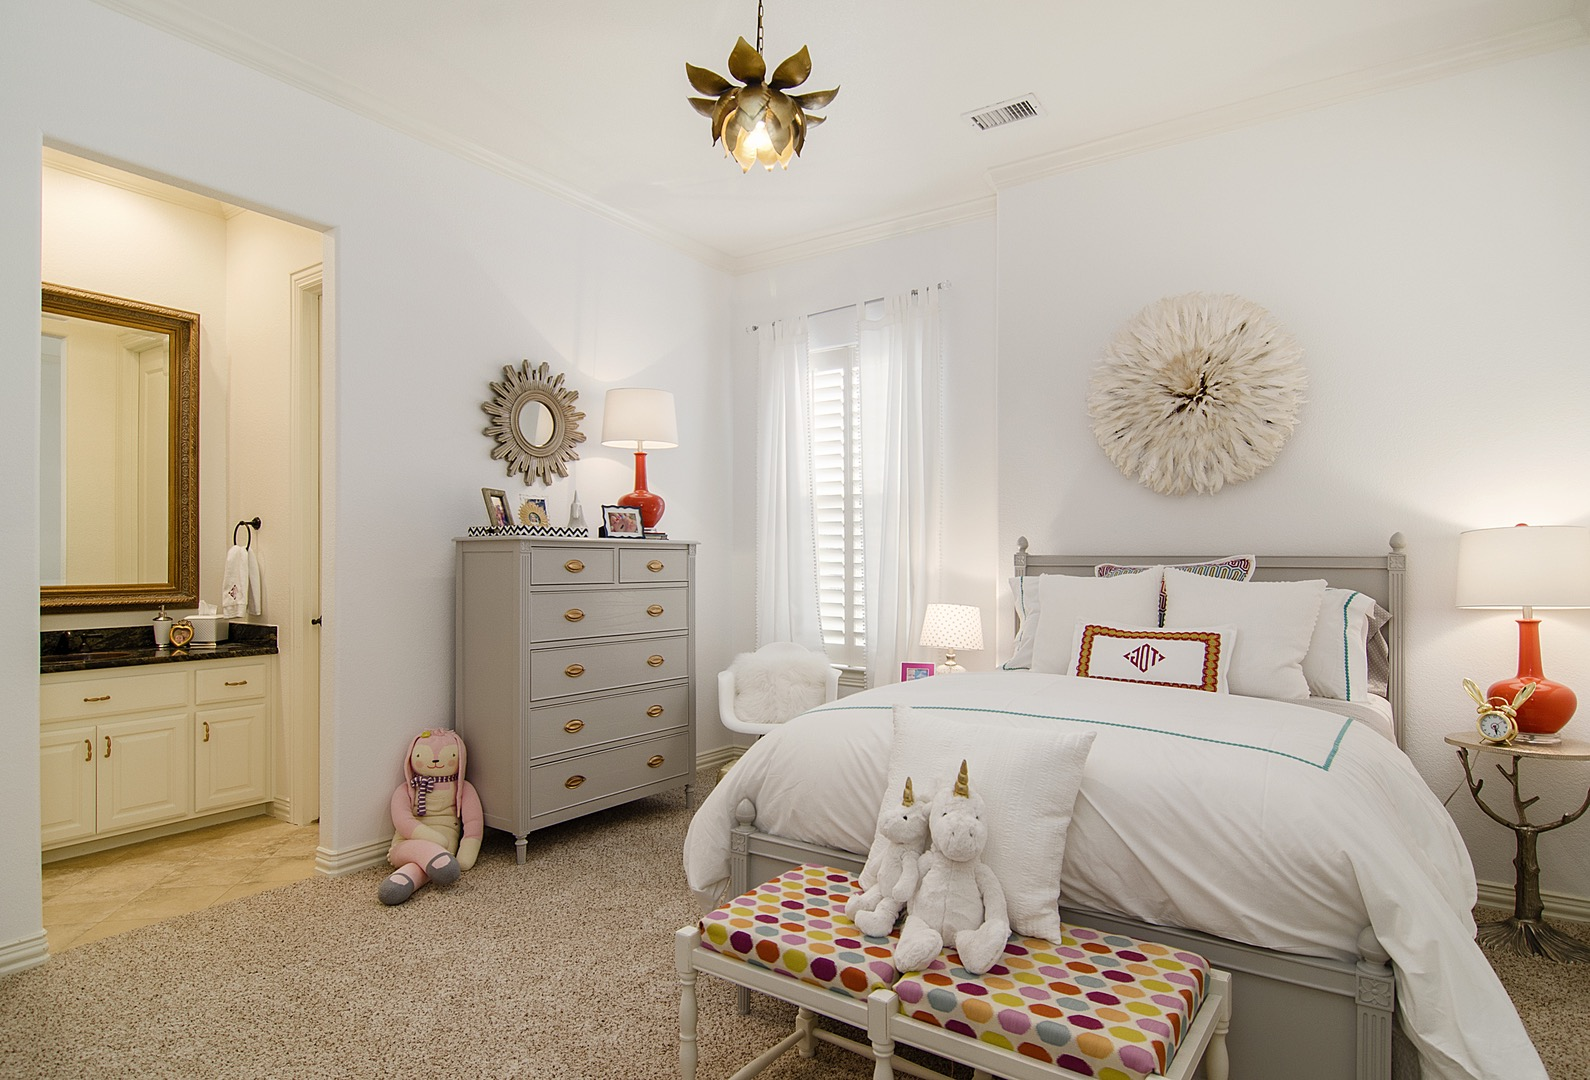 Pretty Contemporary Girl's Bedroom With Whimsical Accents (Image 20 of 30)